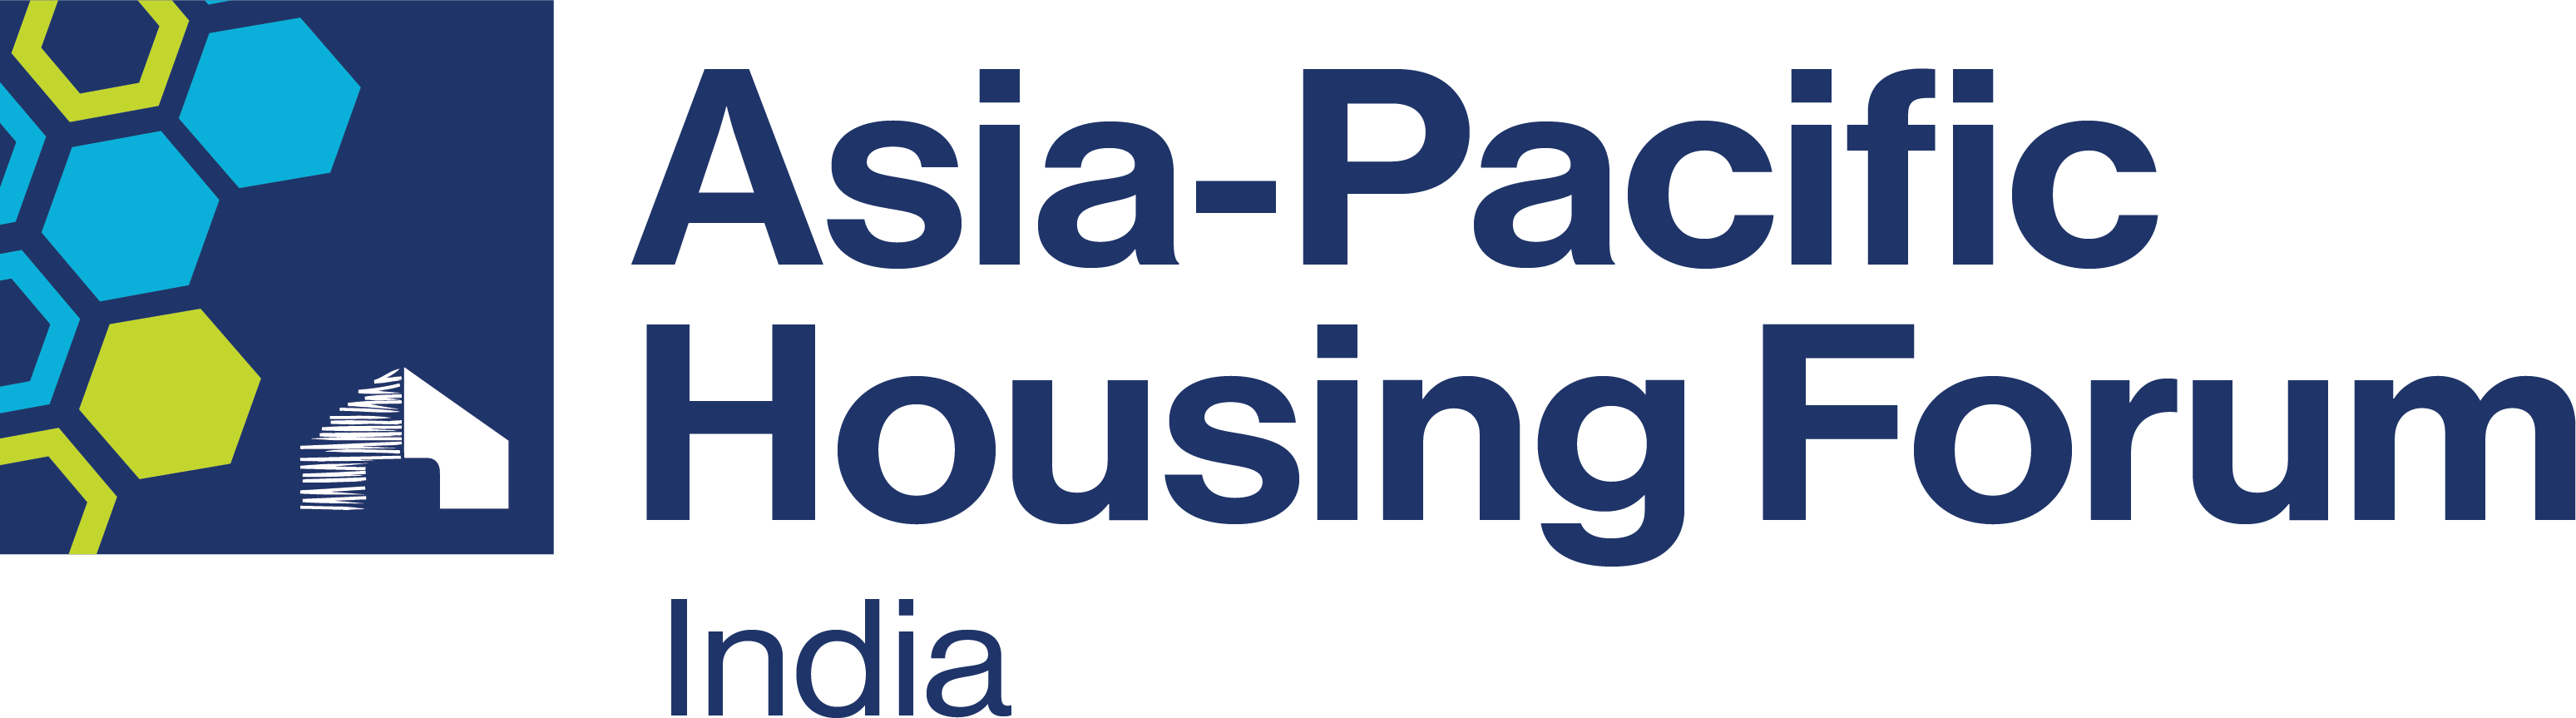 Asia-Pacific Housing Forum 7 India – Habitat for Humanity